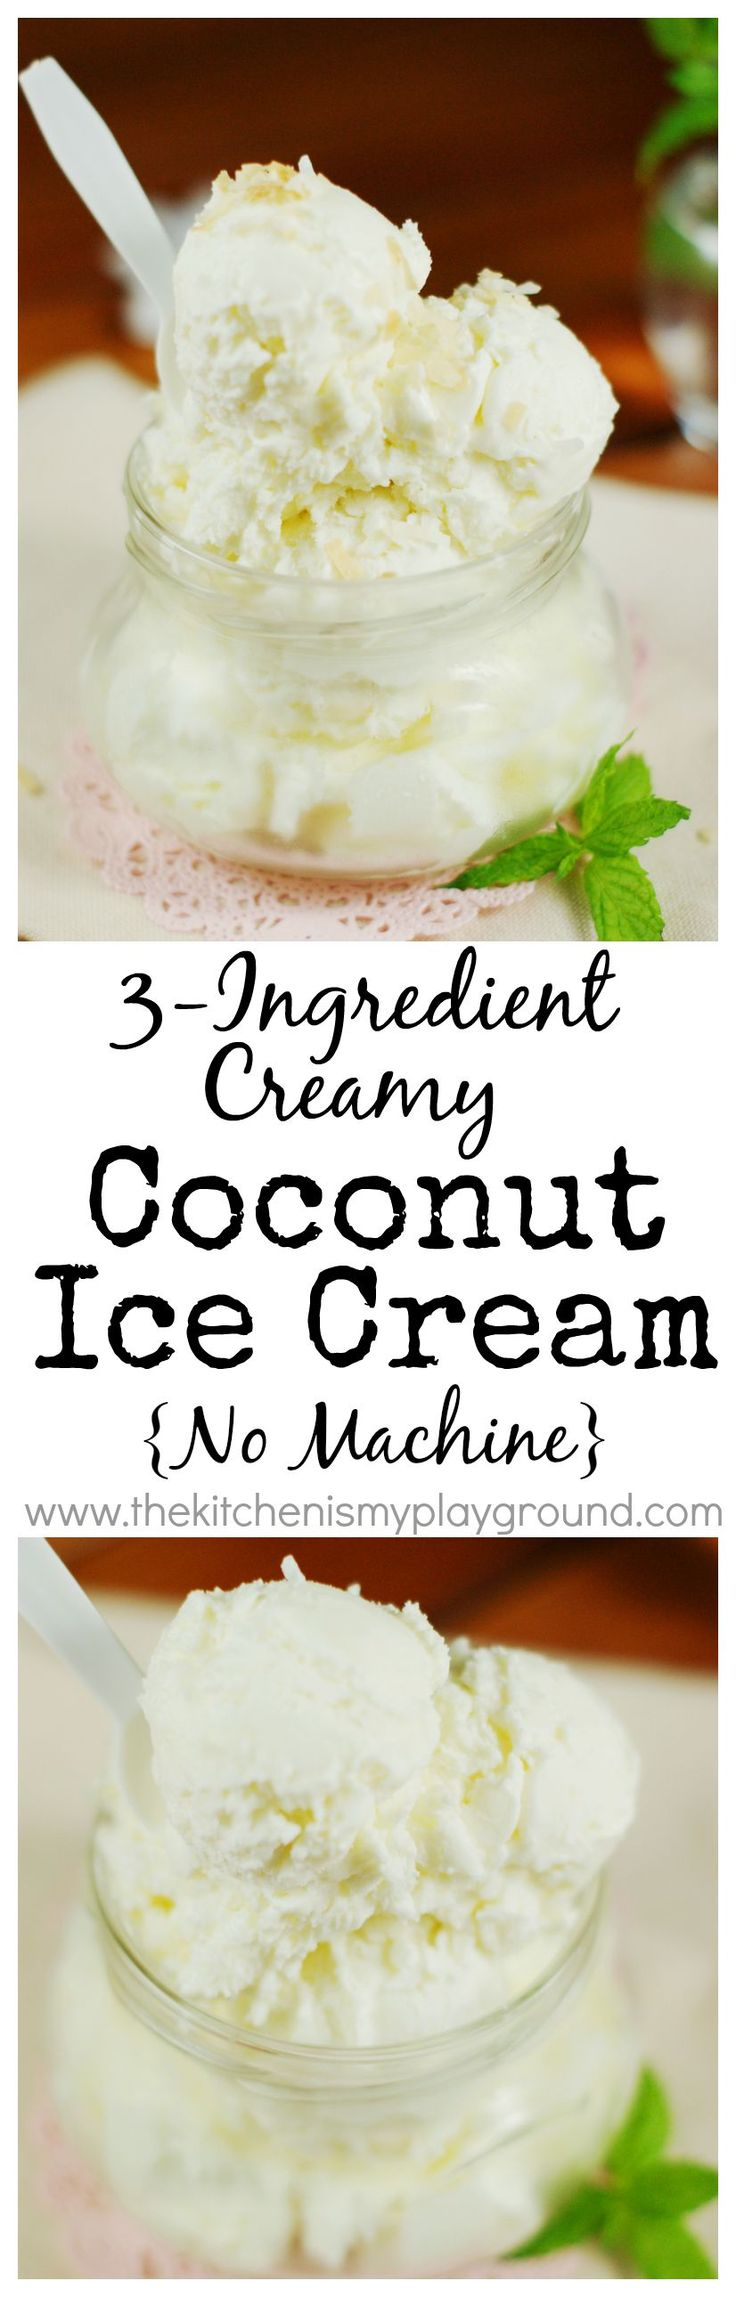 3-Ingredient Creamy Coconut Ice Cream ... with no machine needed! www.thekitchenismyplayground.com